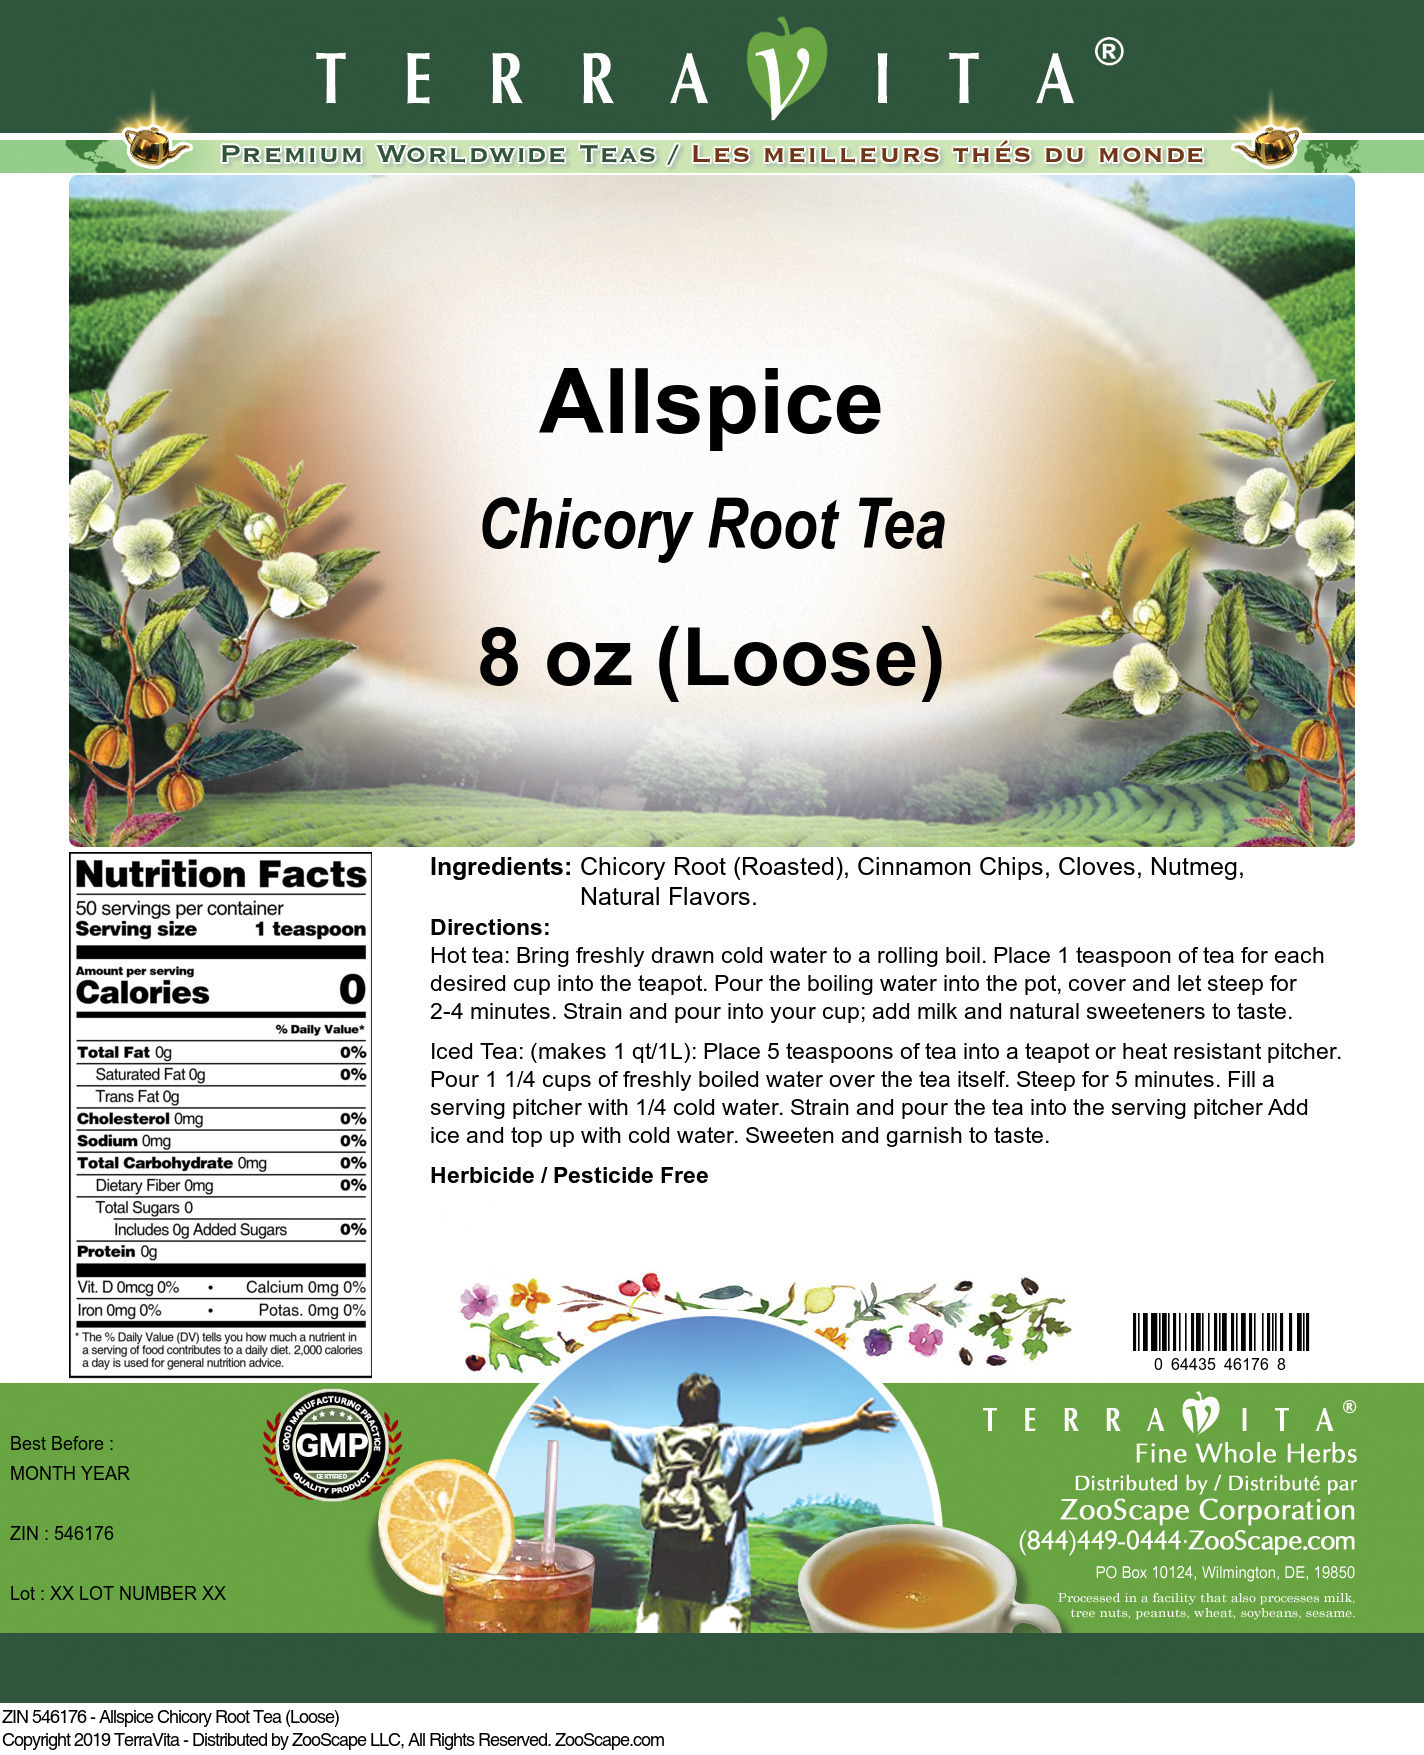 Allspice Chicory Root